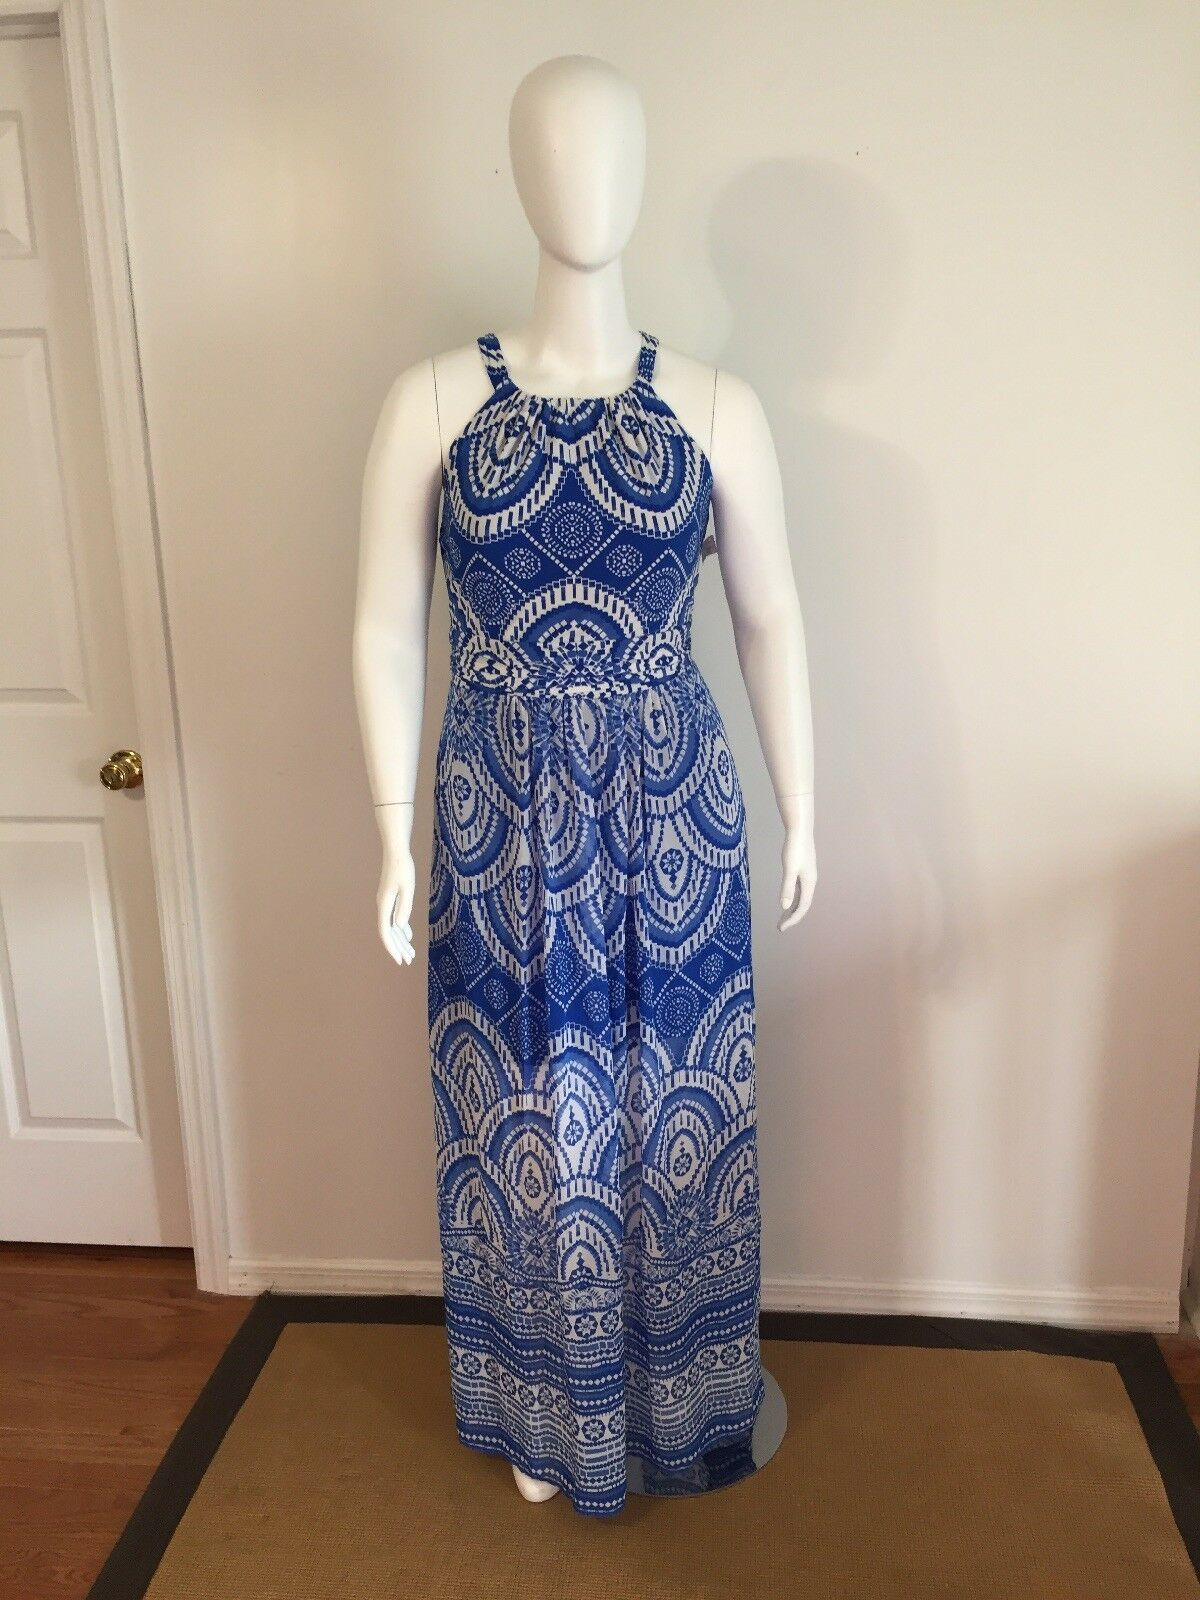 NWT Taylor bluee & White Print Maxi Summer Dress Size 14W